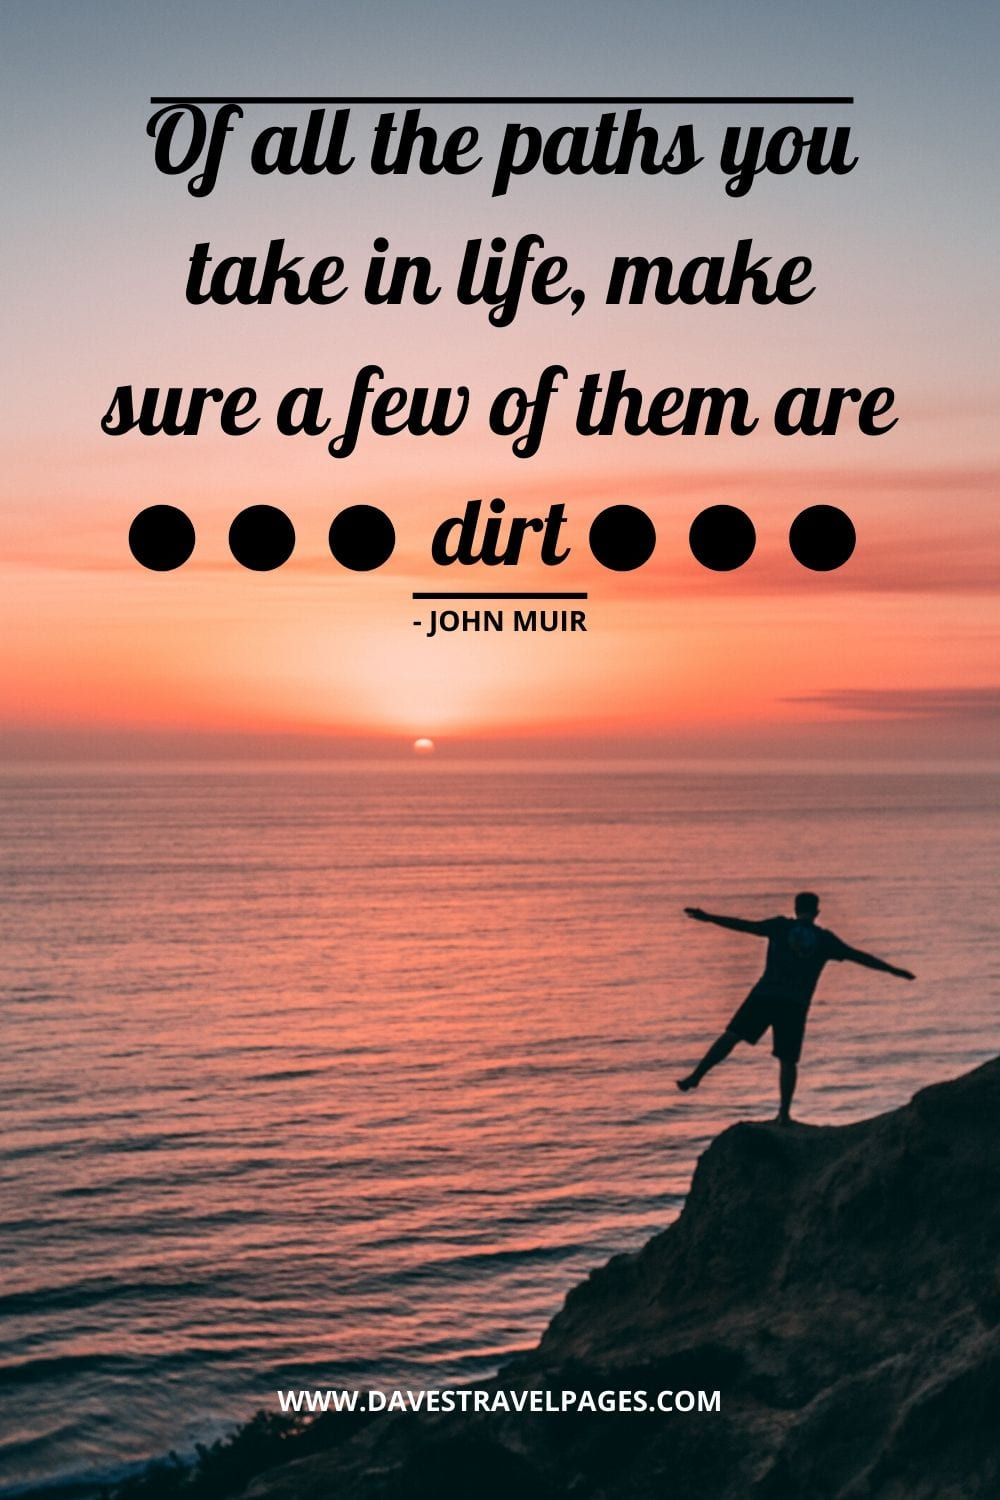 John Muir Walking Quotes: Of all the paths you take in life, make sure a few of them are dirt - John Muir